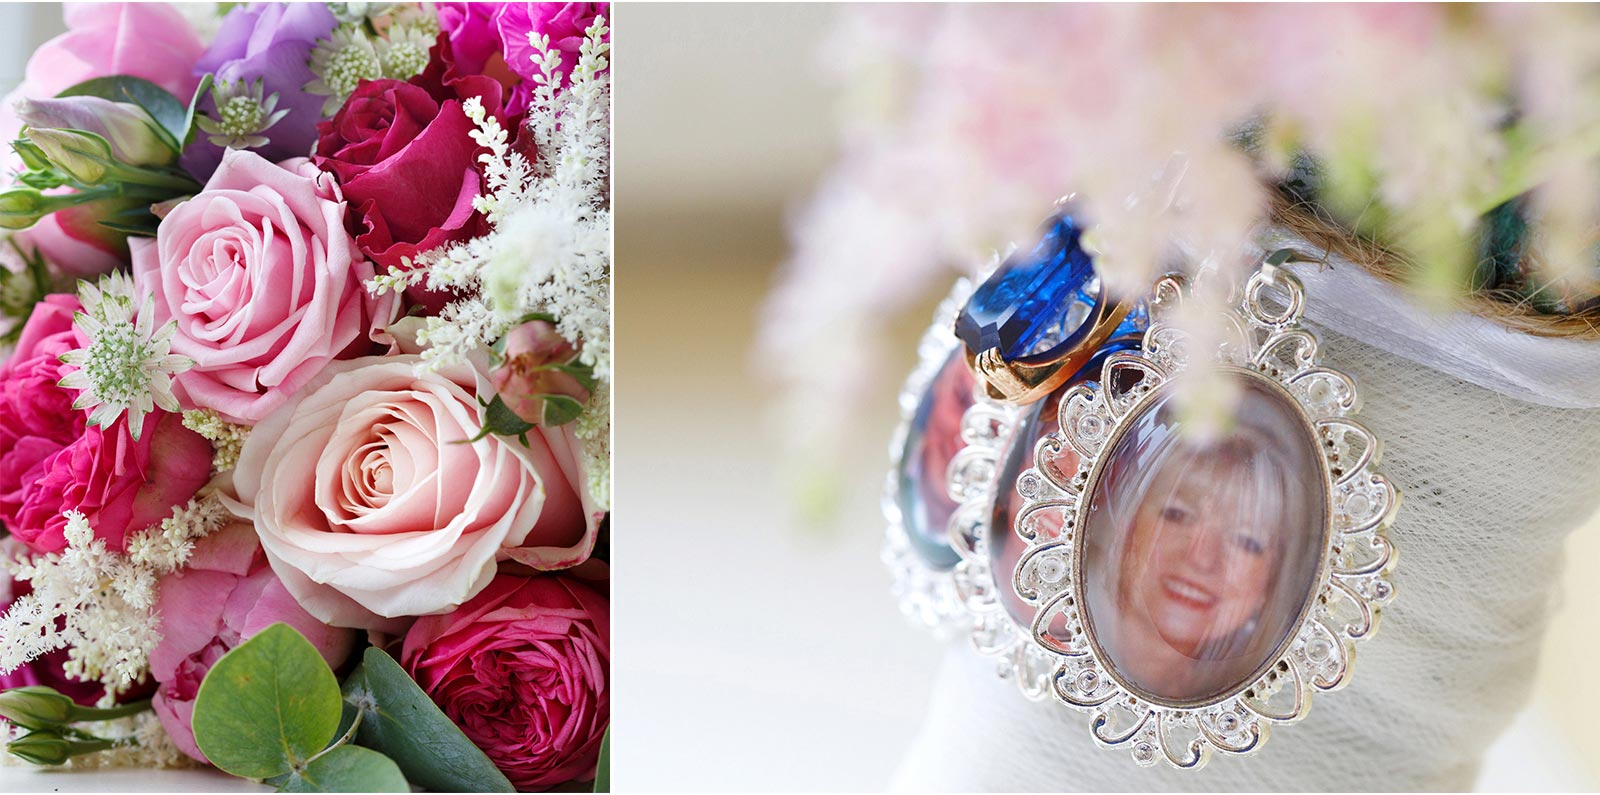 Wedding flowers with photo momento